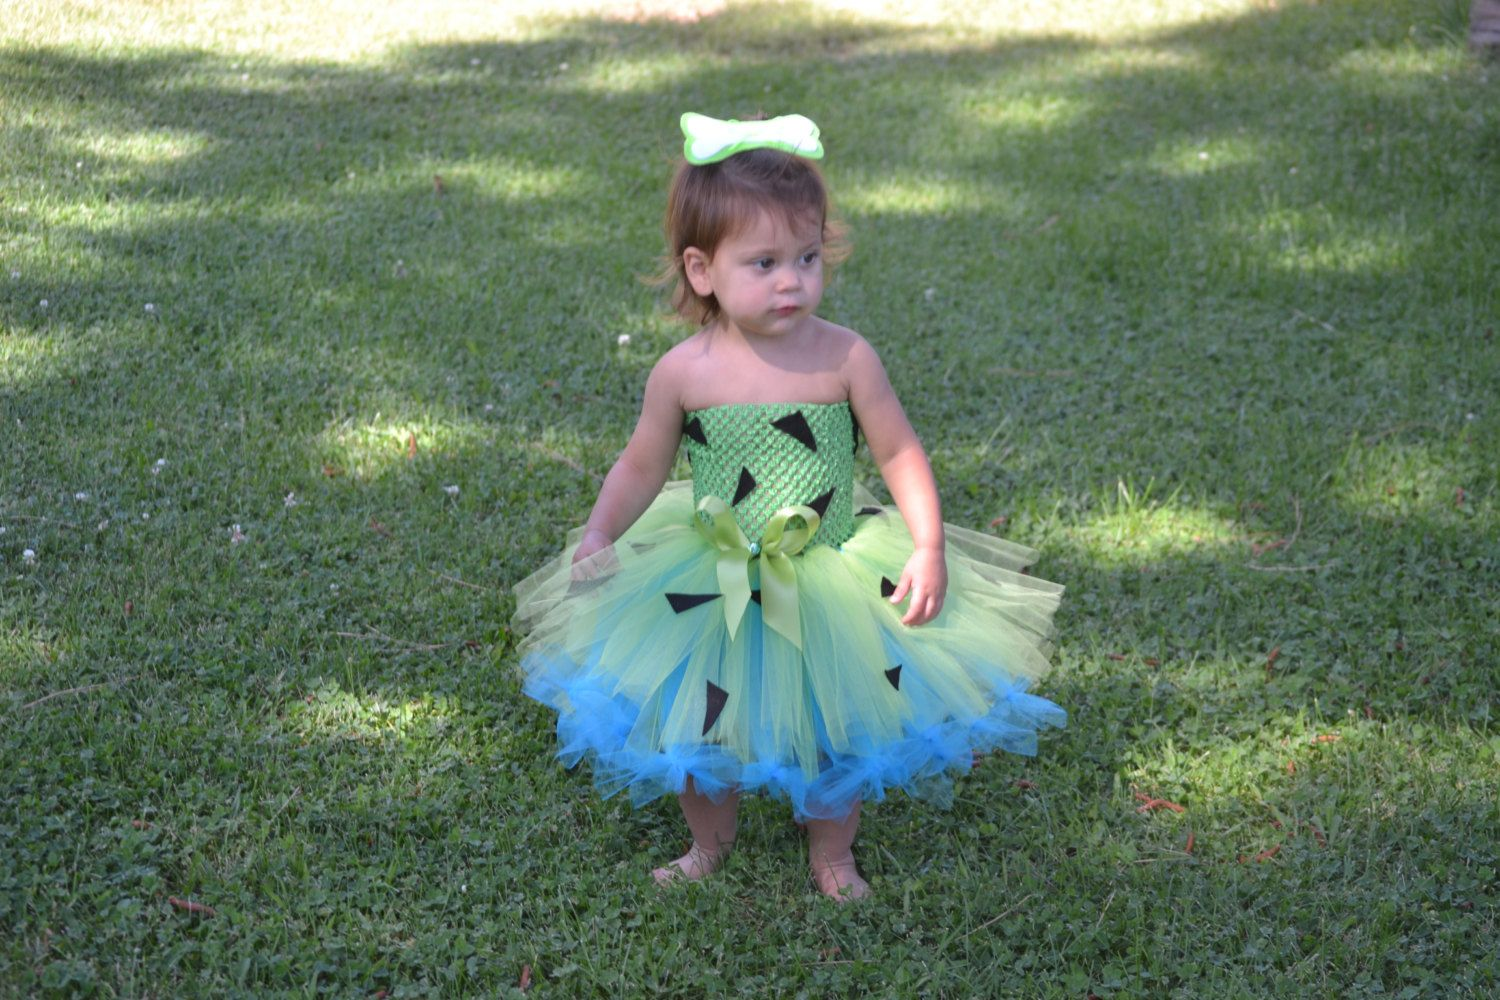 Pebbles Costume for Baby, Toddler Pebbles Costume, Pebbles Flinstone, Pebbles and Bam Bam, Pebbles Tutu, Pebbles Birthday, Flinstones #pebblesandbambamcostumes